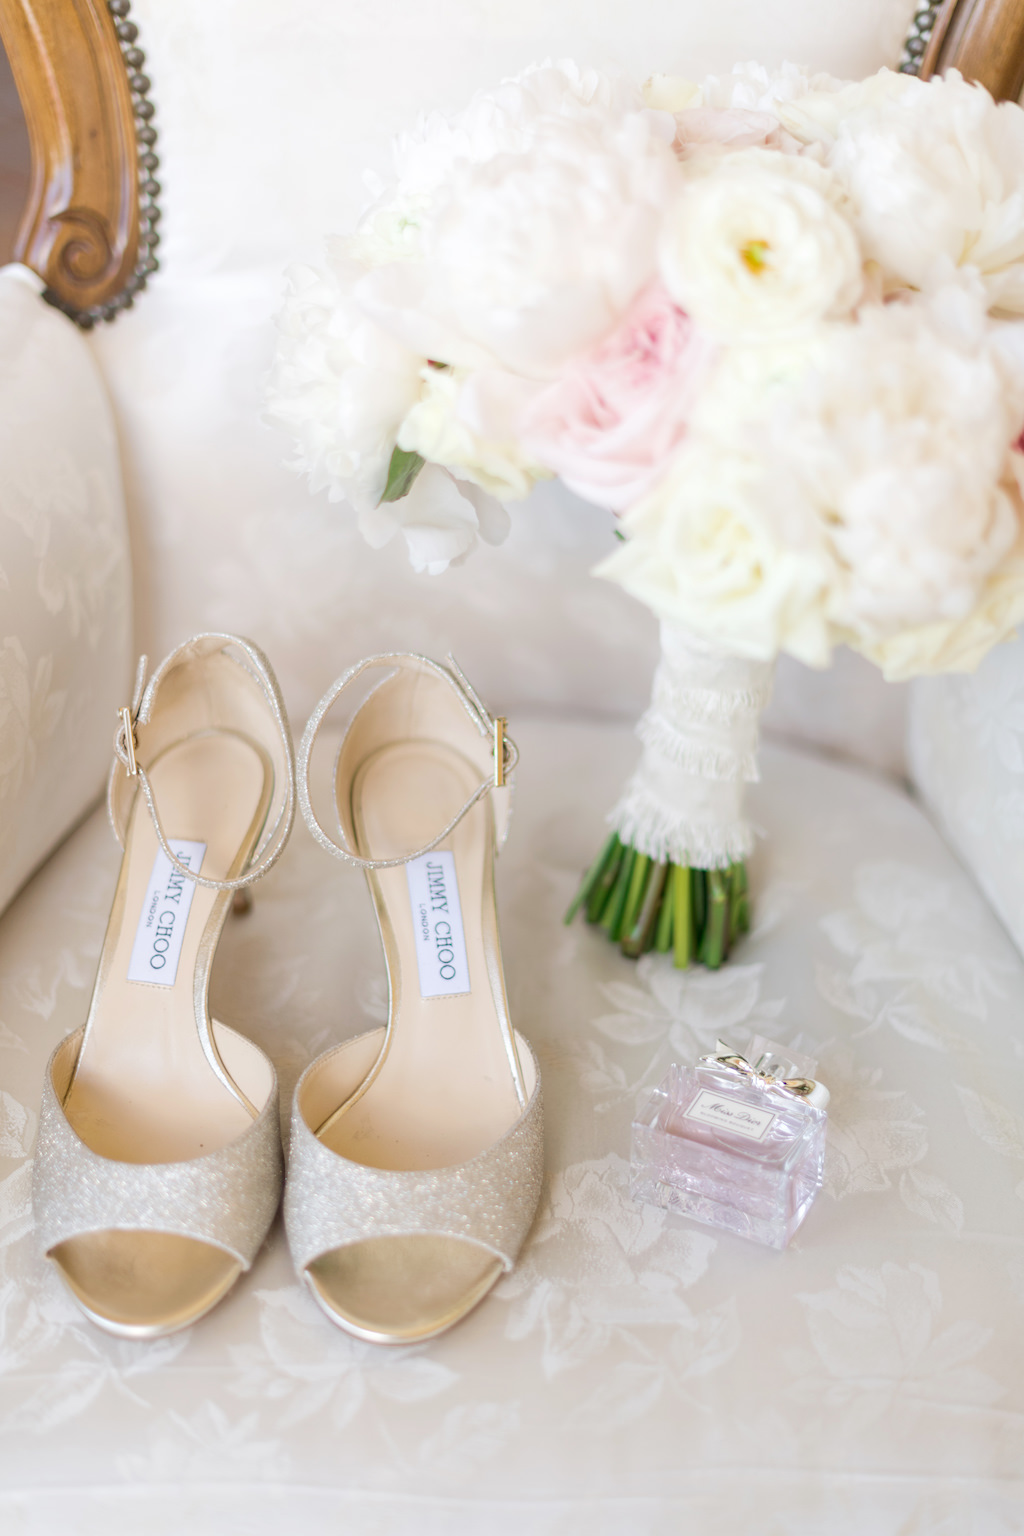 Glitter Champagne Gold Jimmy Choo Open Toe Sandal Wedding Shoes, Blush Pink and Ivory Rose Bouquet and Miss Dior Perfume Bottle